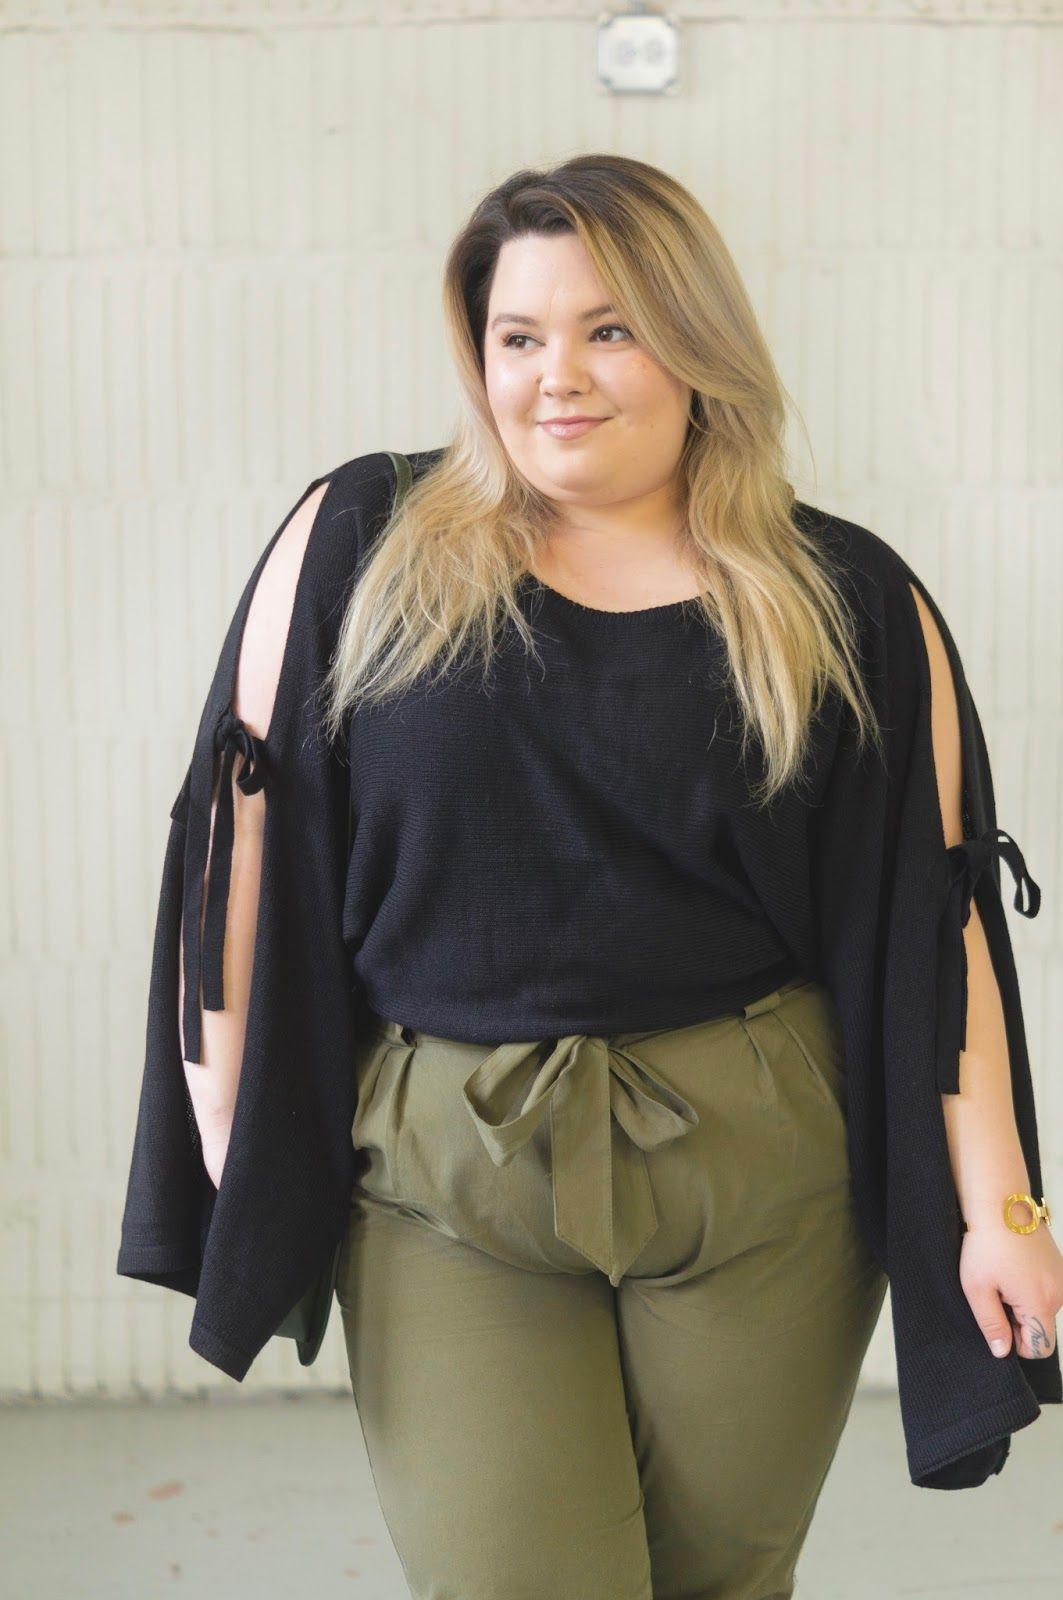 6d9ce233b54 Chicago Plus Size Fashion Blogger Natalie Craig reviews Fashion Nova Curve s  Going on an Adventure Green Cargo Pants and Arosa Tie Sleeve Sweater.